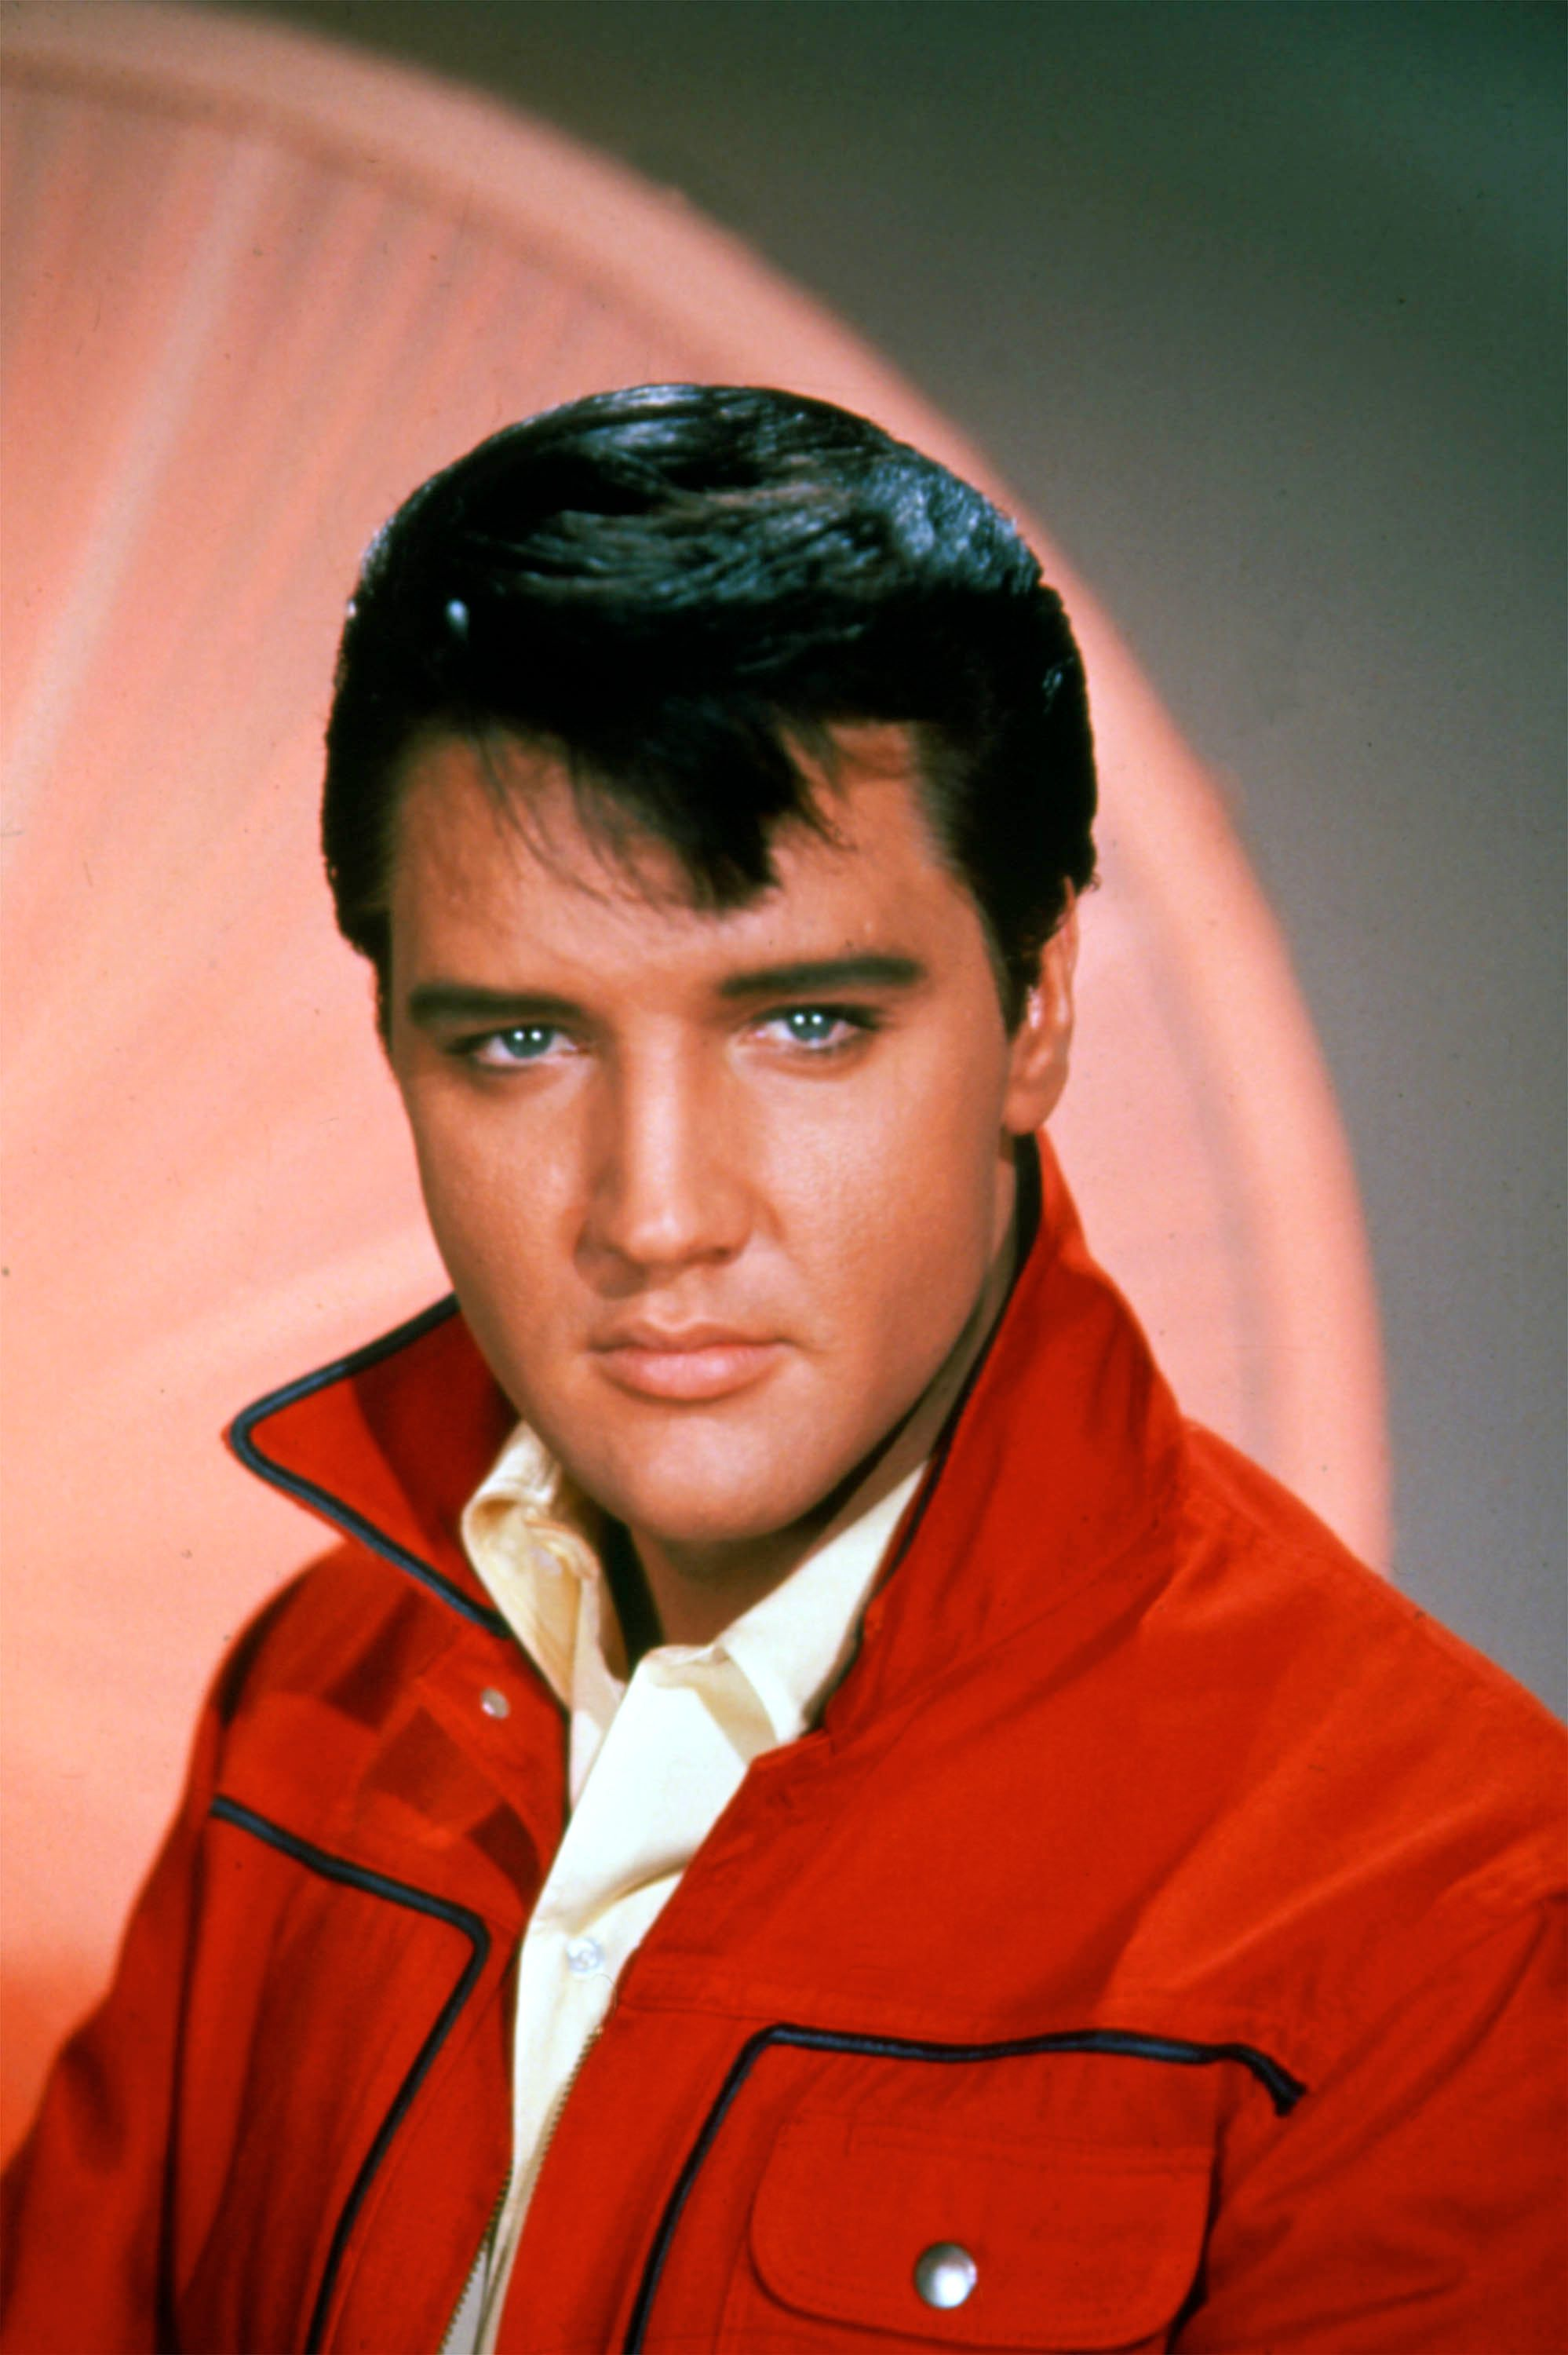 Late singer Elvis Presley poses for a studio portrait on January 1, 1965. | Photo: Getty Images.